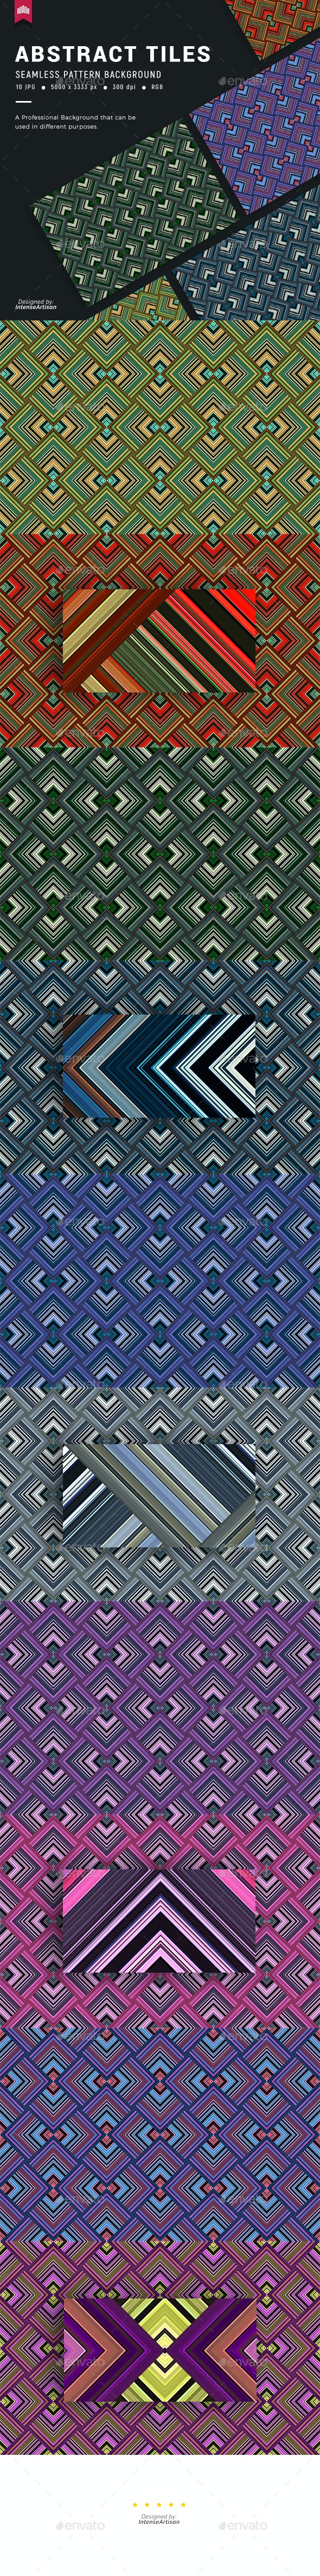 Abstract Tiles Seamless Pattern Background - Patterns Backgrounds